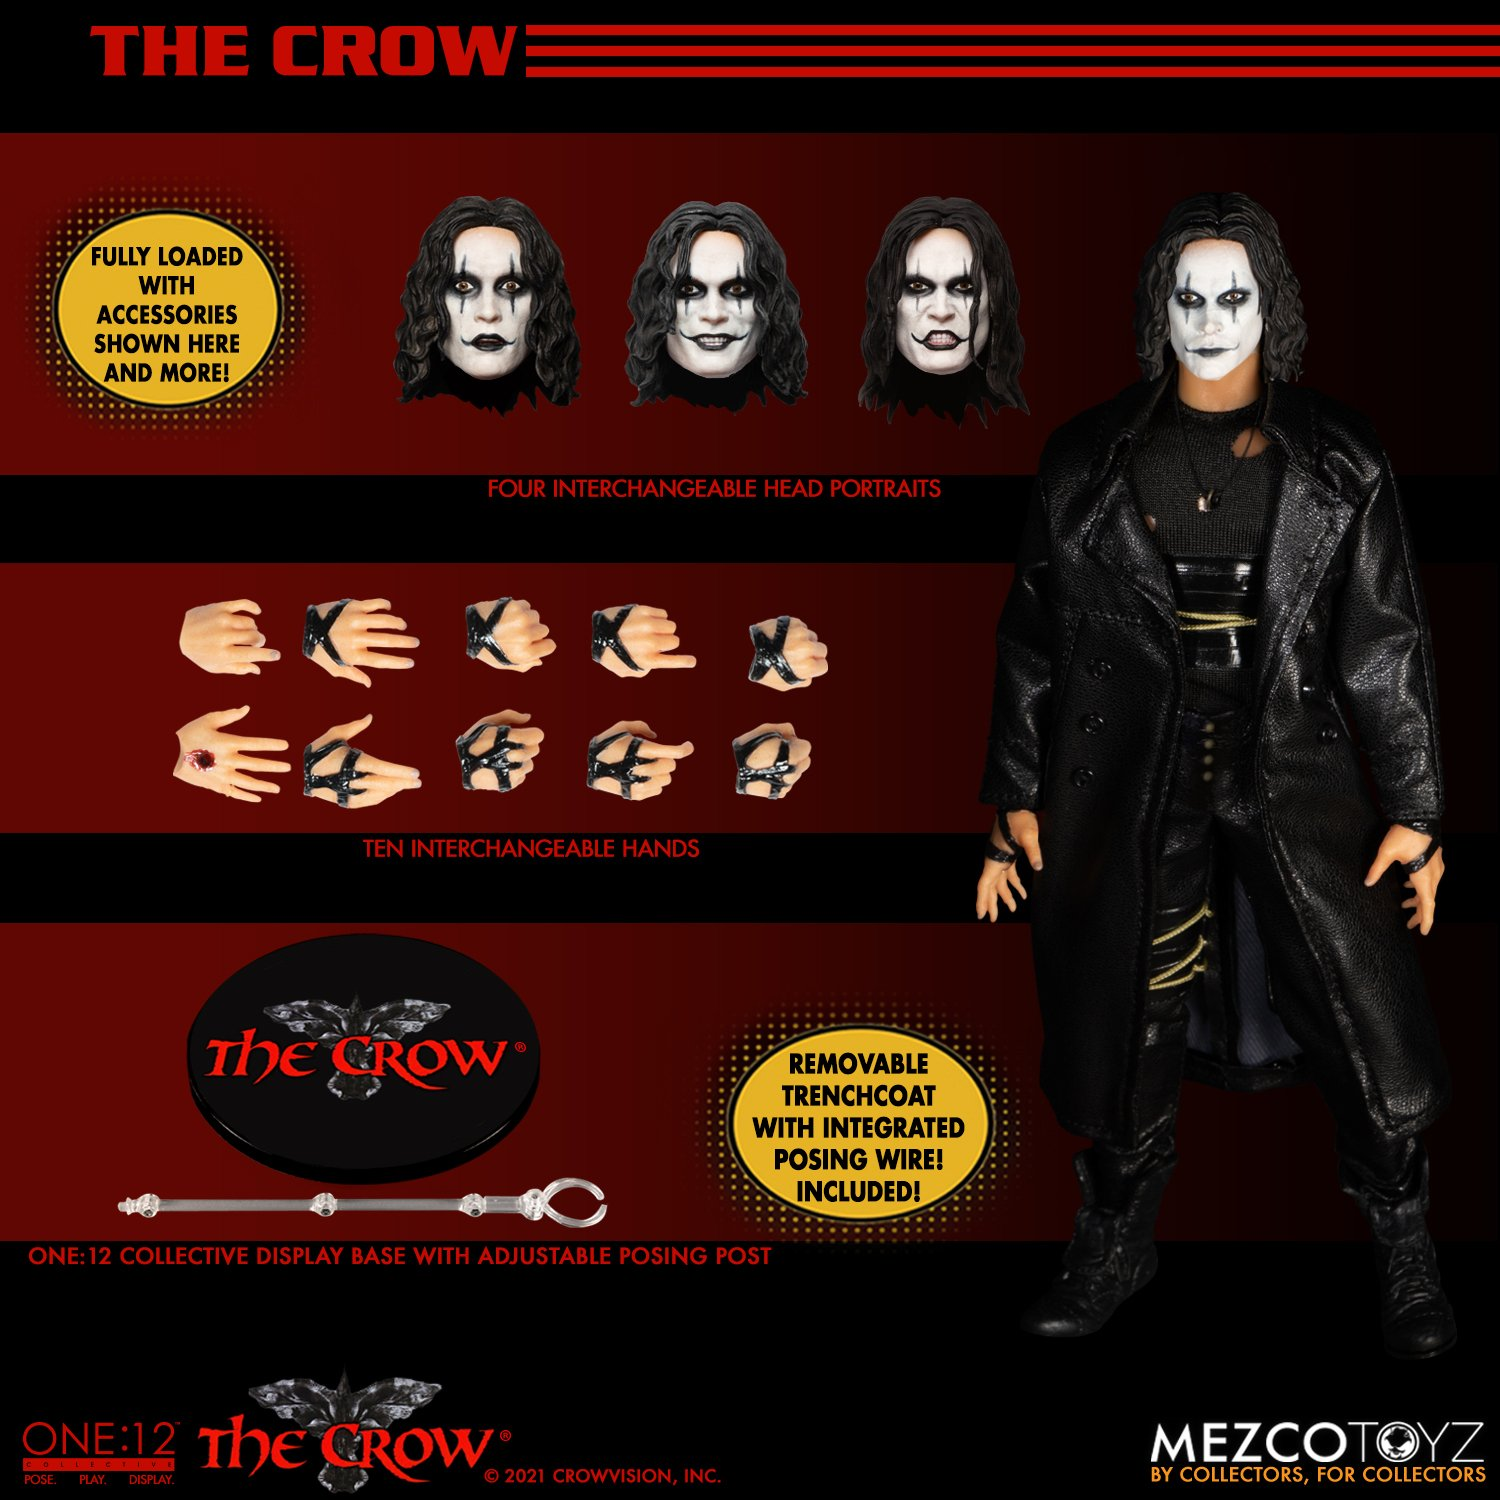 The Crow Accessories 1